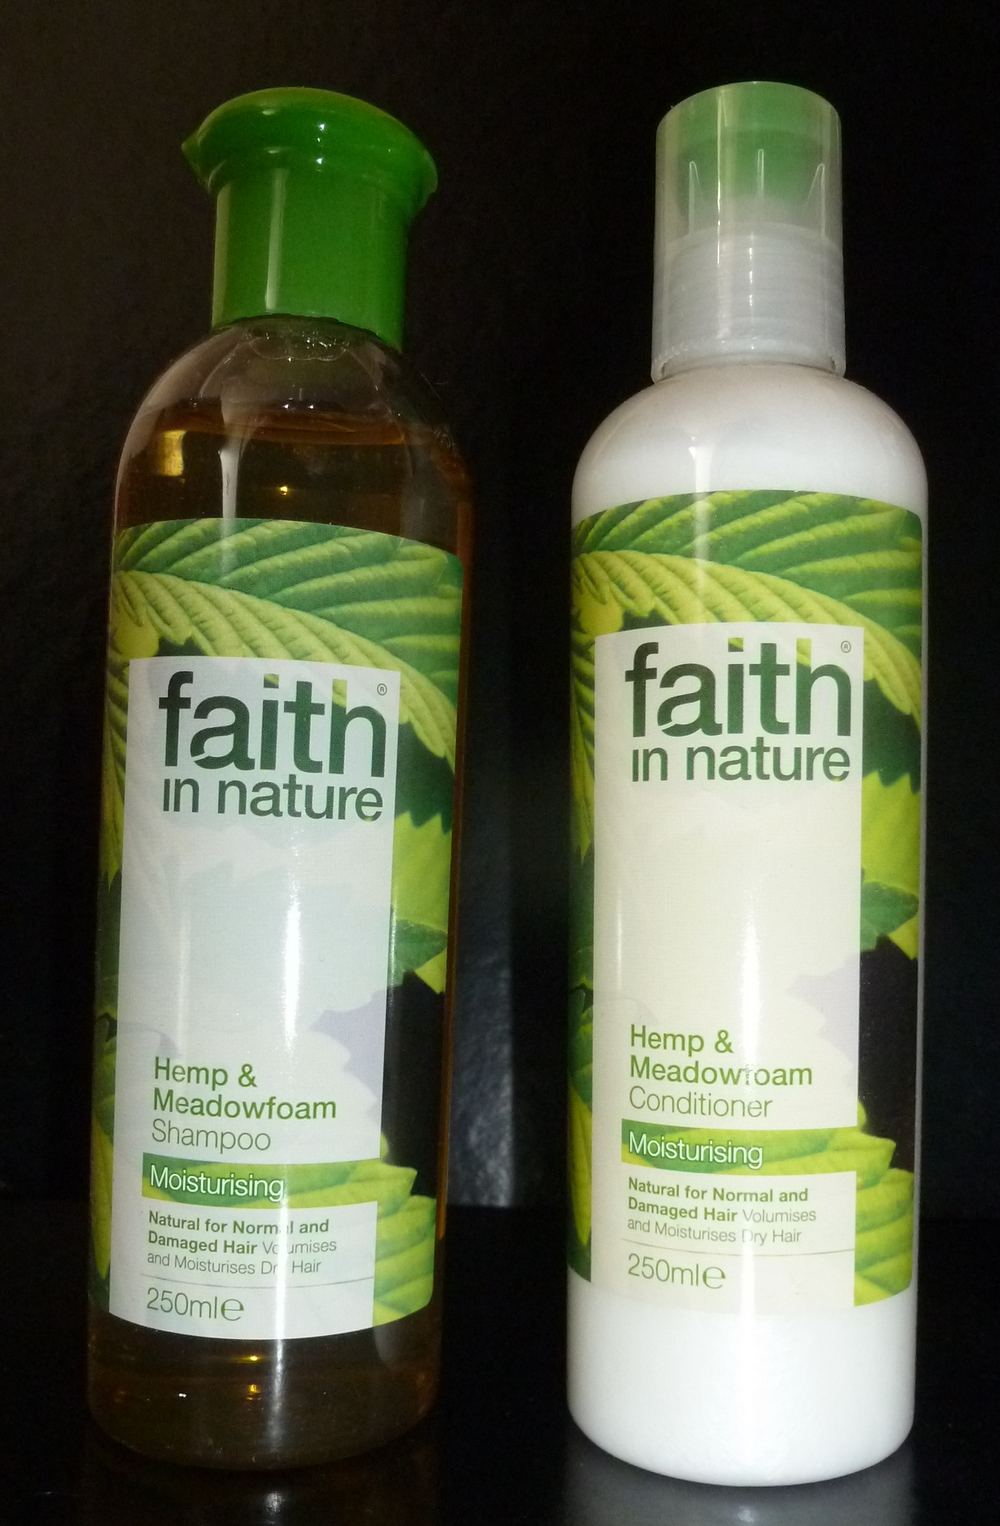 shampooing apres shampoing faith in nature vegan mania